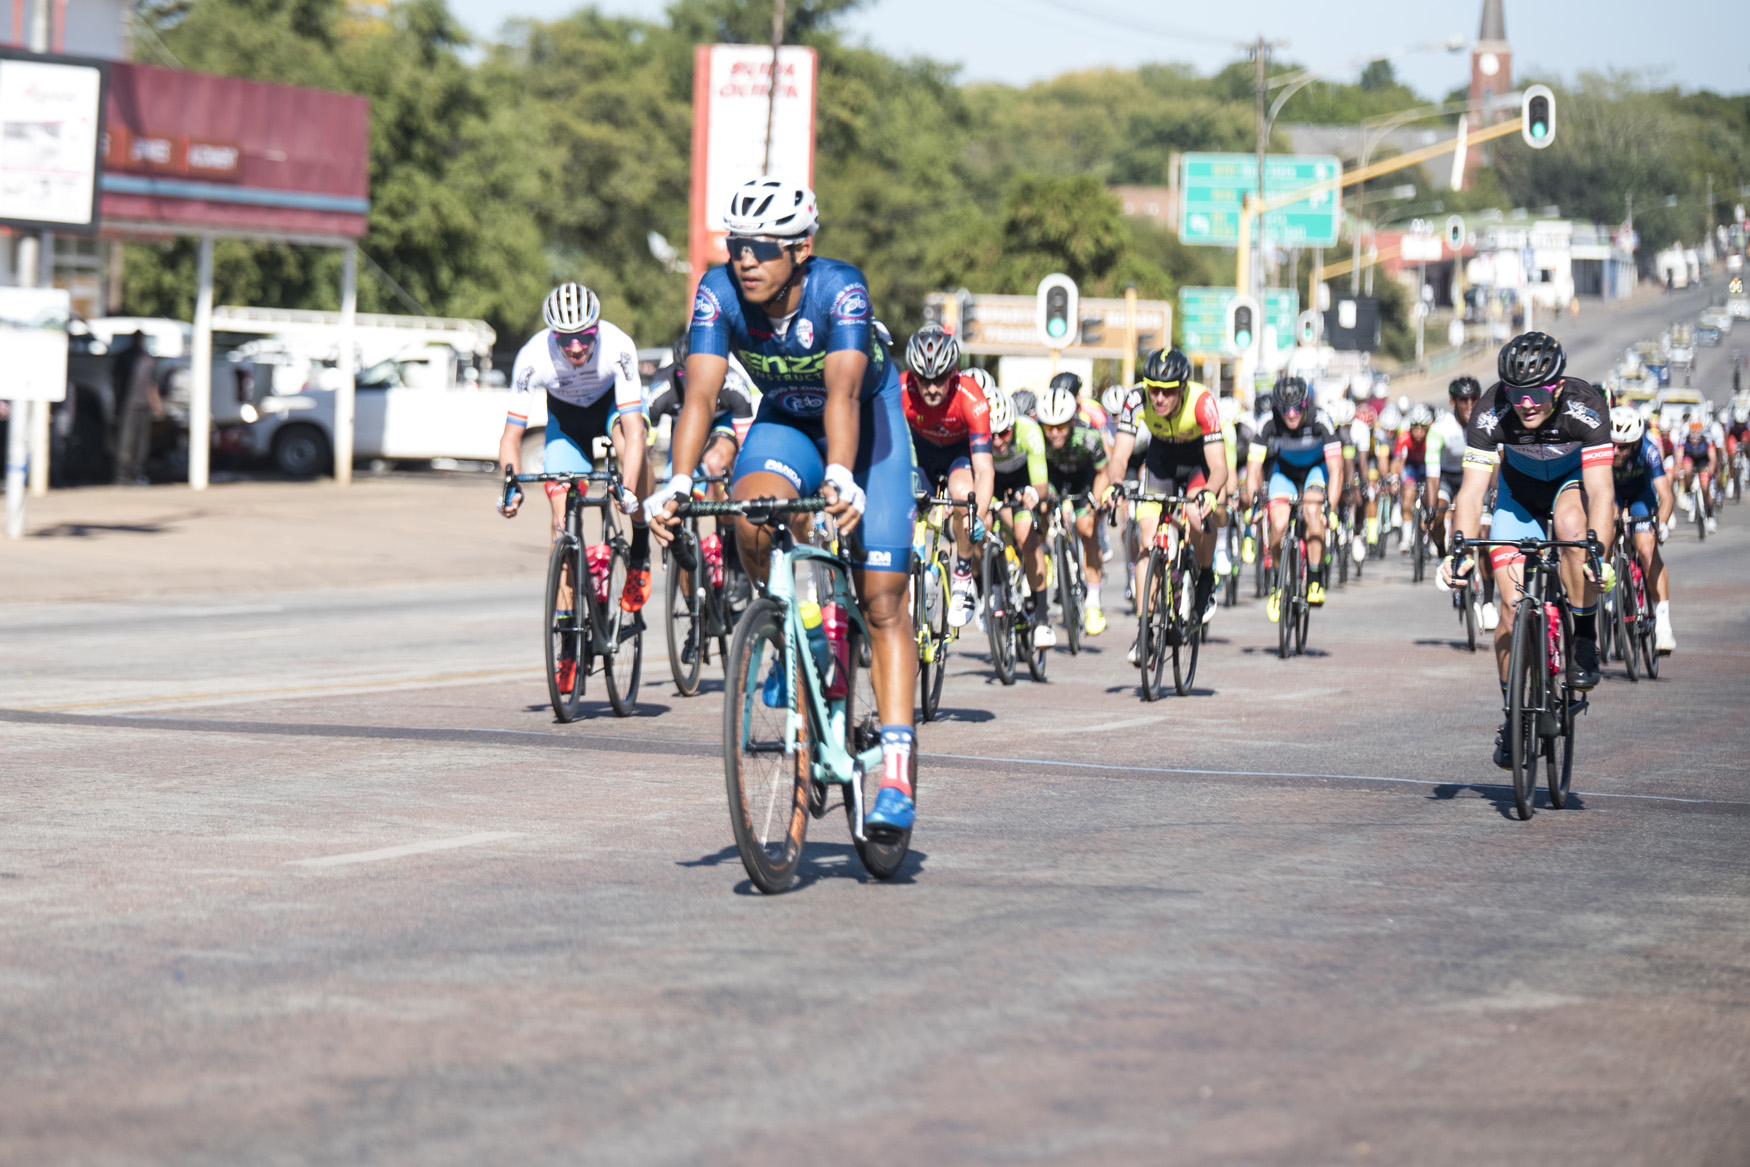 Nolan Hoffman (Proud Beginners) claimed the first sprint hotspot from Bela Bela to Polokwane on Stage 1 of the 2019 Tour de Limpopo (UCI 2.2) from 14-18 May © Tour de Limpopo/Andrew Mc Fadden